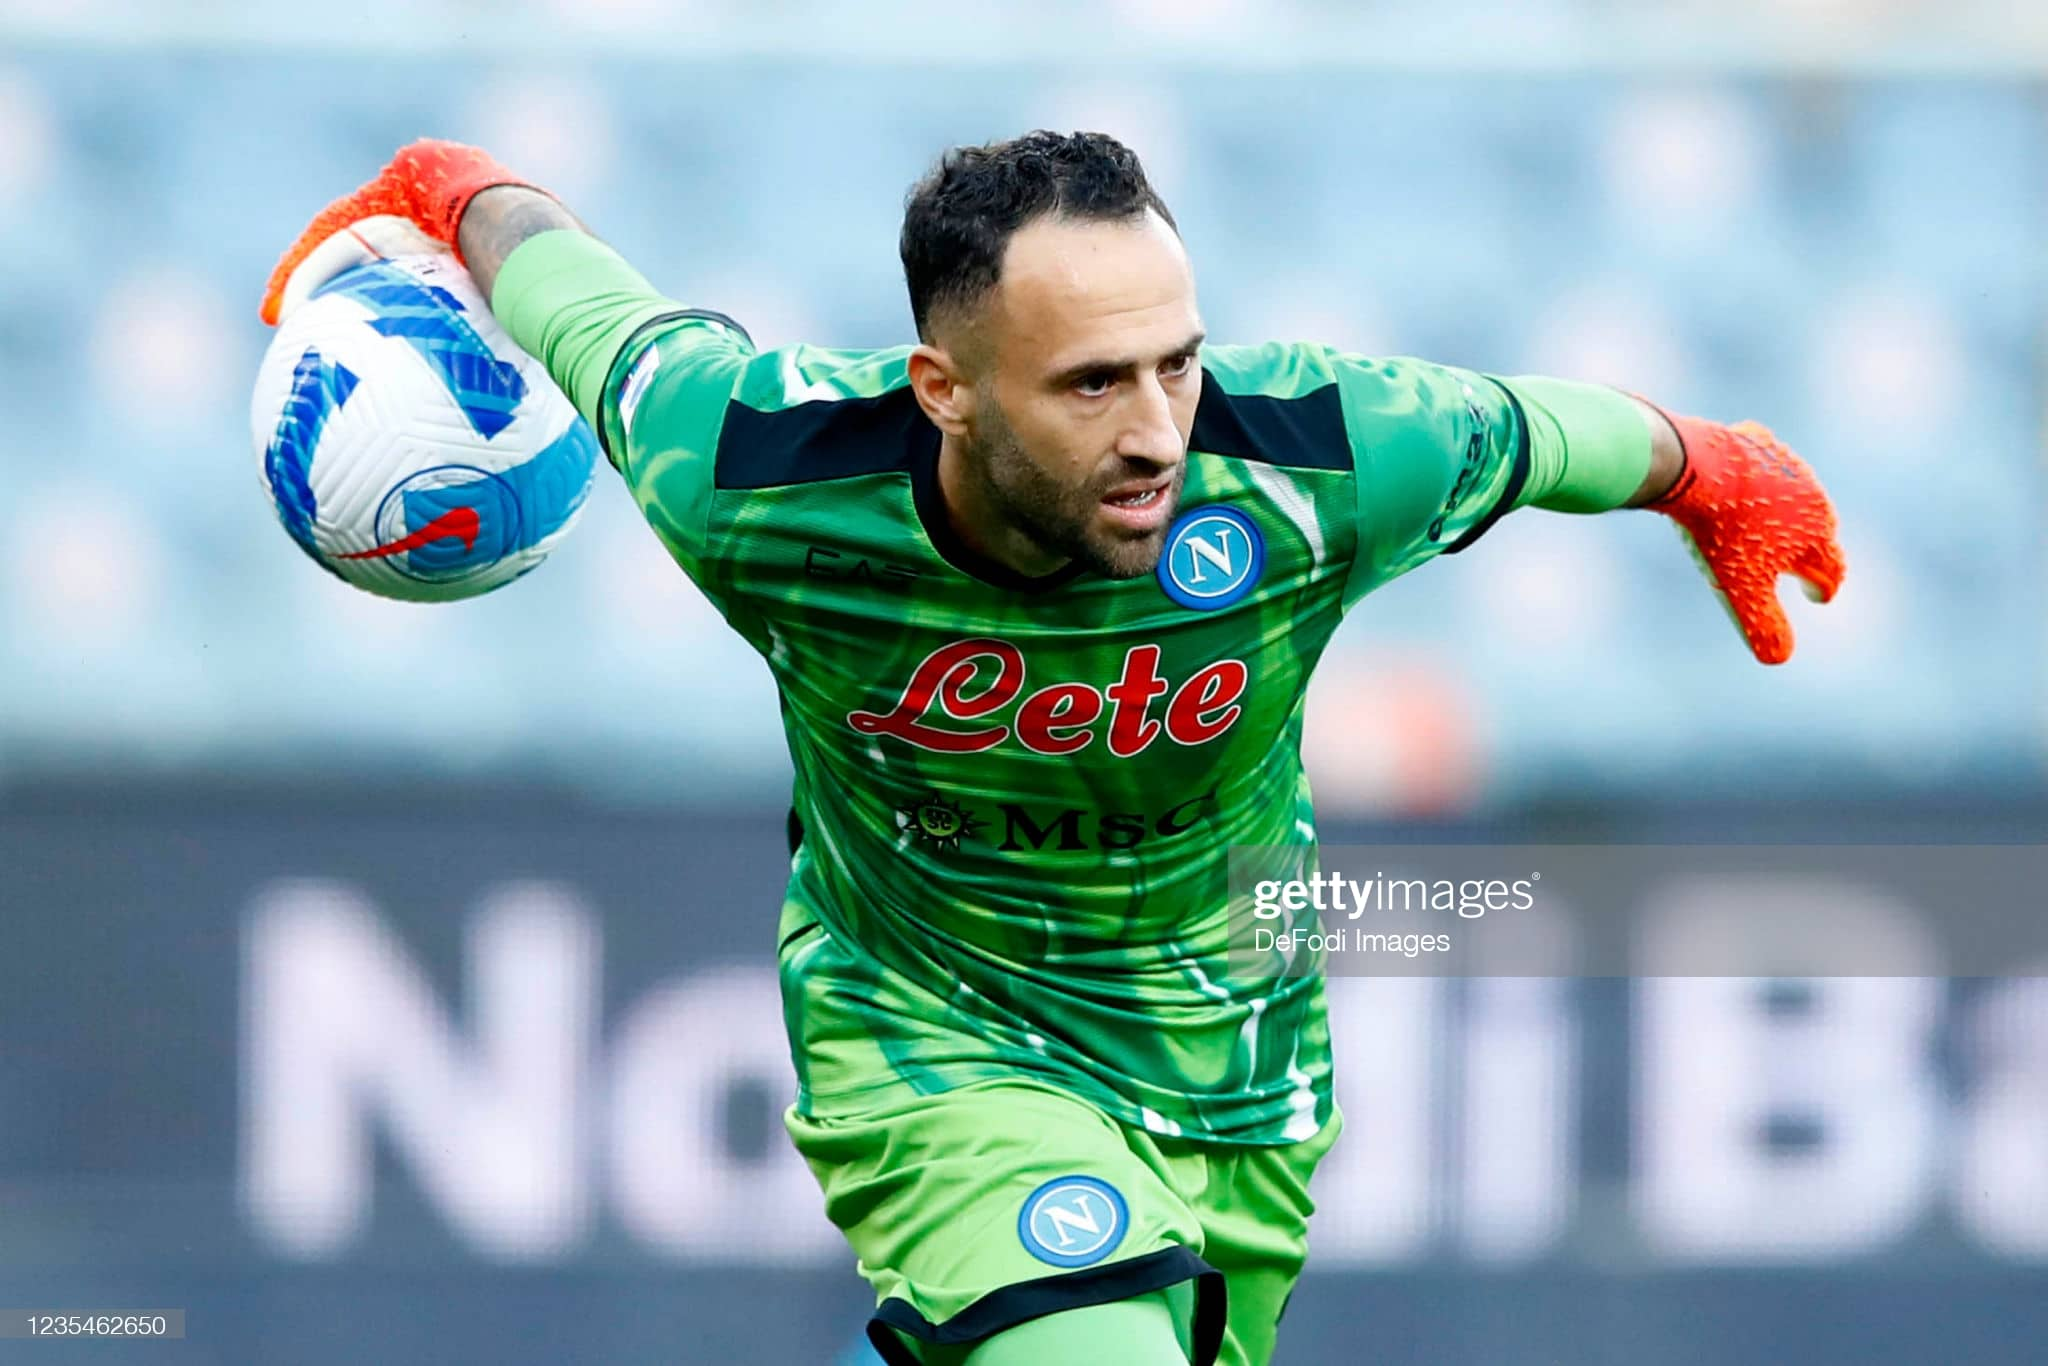 GENOA, ITALY - SEPTEMBER 23: (BILD OUT) David Ospina of SSC Napoli controls the ball during the Serie A match between UC Sampdoria and SSC Napoli at Stadio Luigi Ferraris on September 23, 2021 in Genoa, Italy. (Photo by Matteo Ciambelli/DeFodi Images via Getty Images)